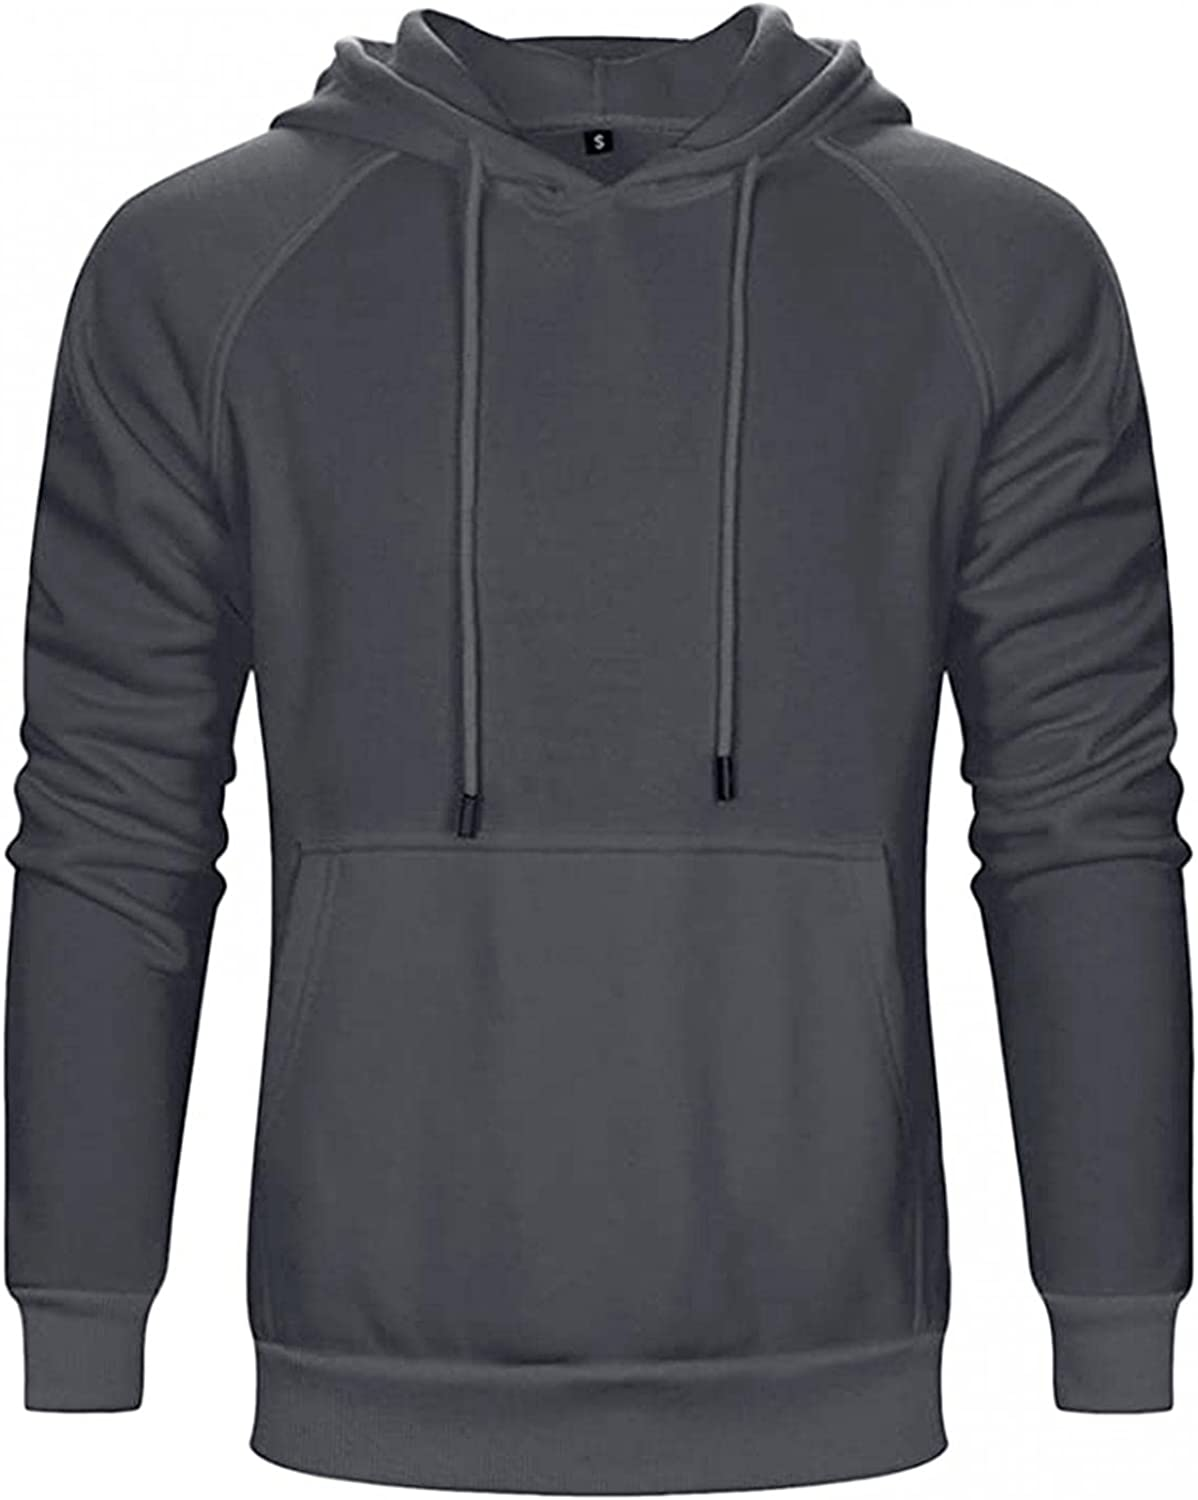 Qsctys Men's Fashion Hoodies Fleece Crewneck Sweatshirts Hooded Pullover Slim Fit Casual Long Sleeve Sports Fitness Clothing